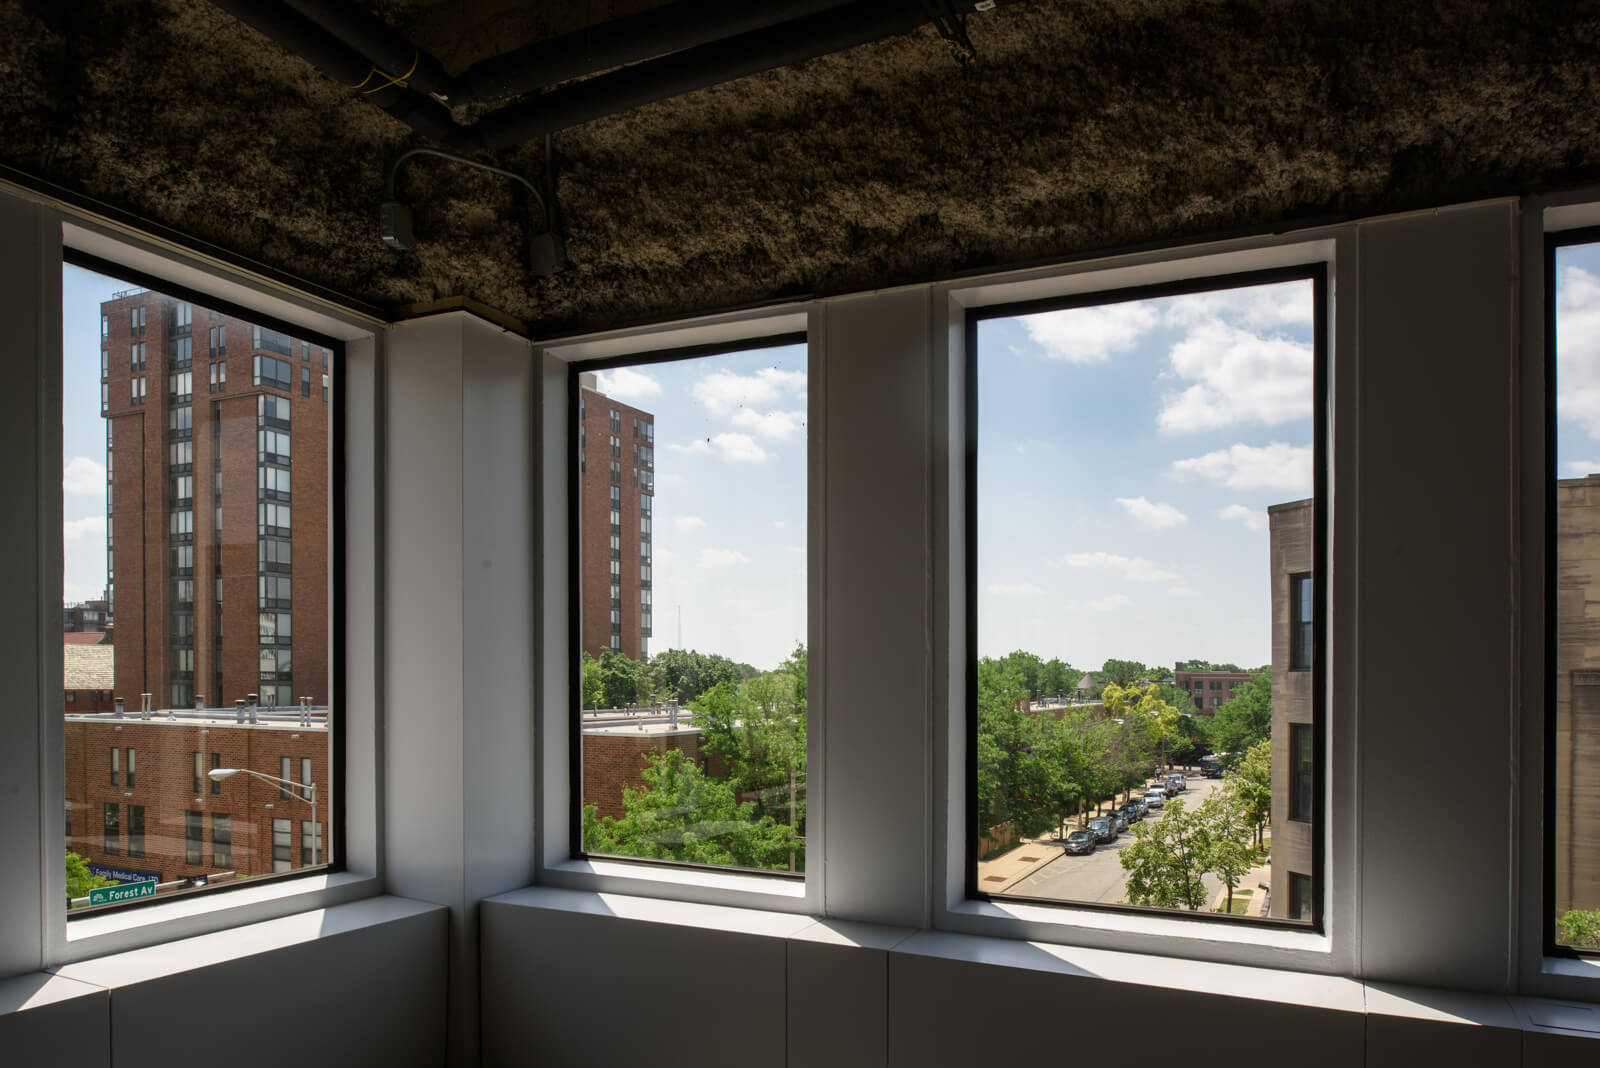 Views from the available offices and medical spaces at 1010 Lake Street, Oak Park, IL